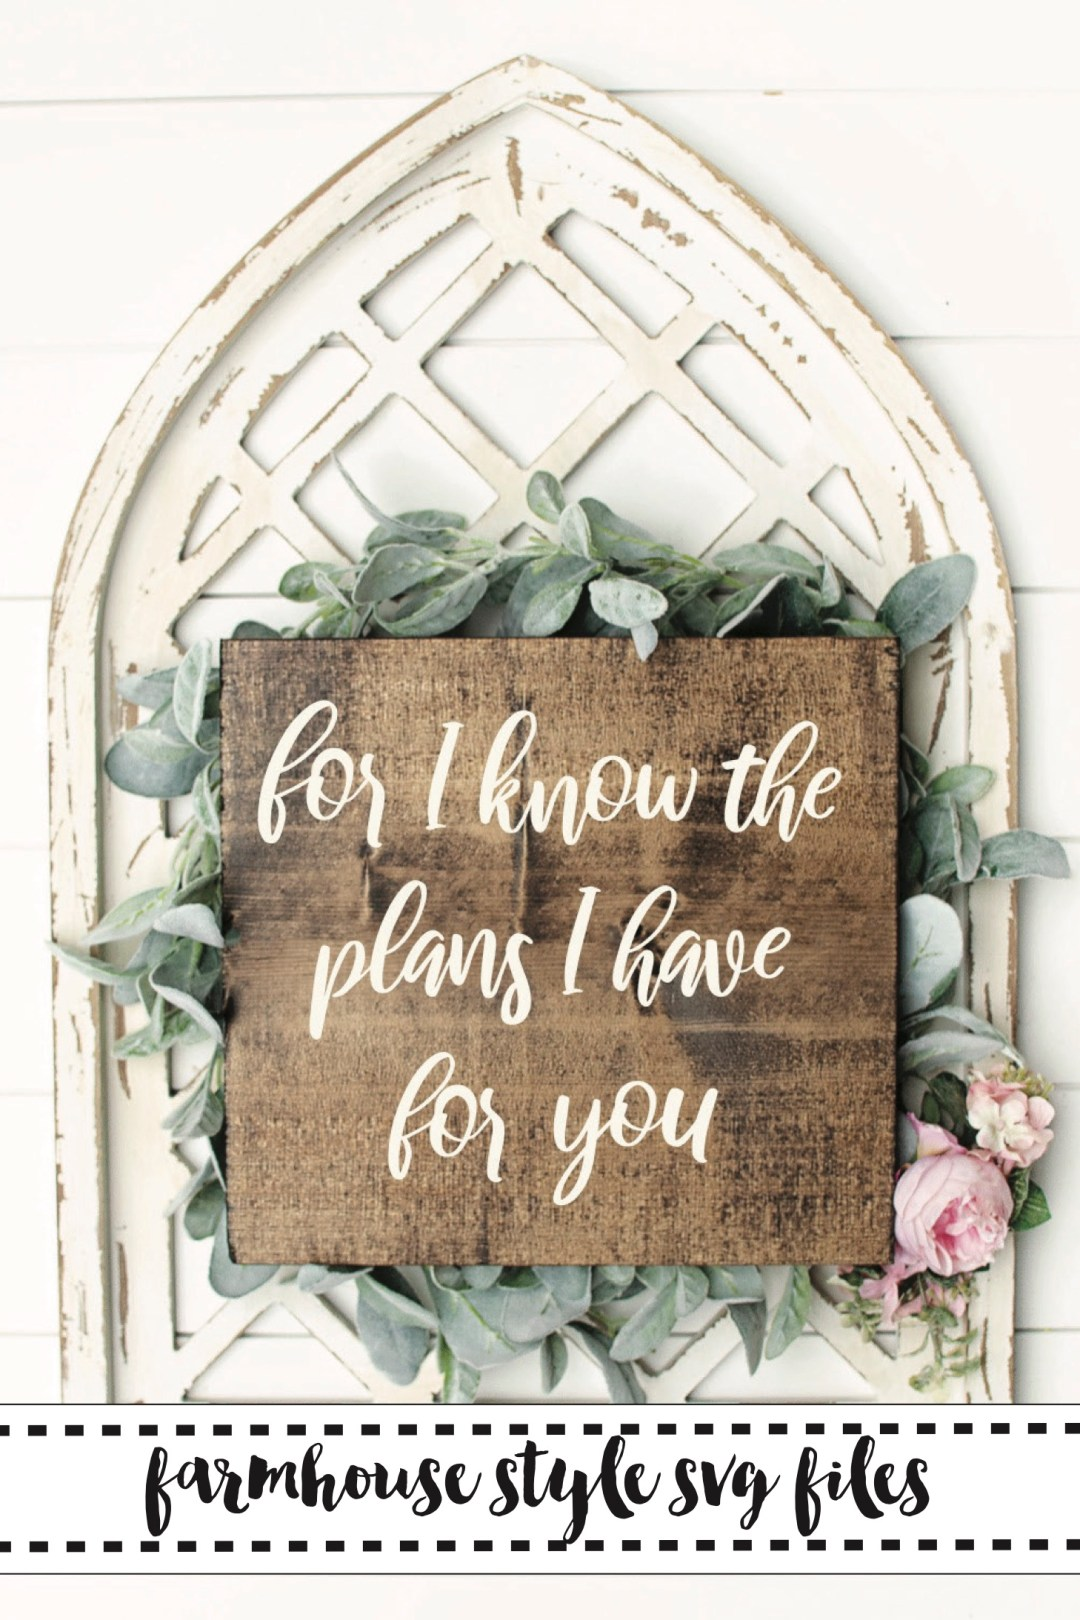 For I know the plans I have for you farmhouse style sign wreath window